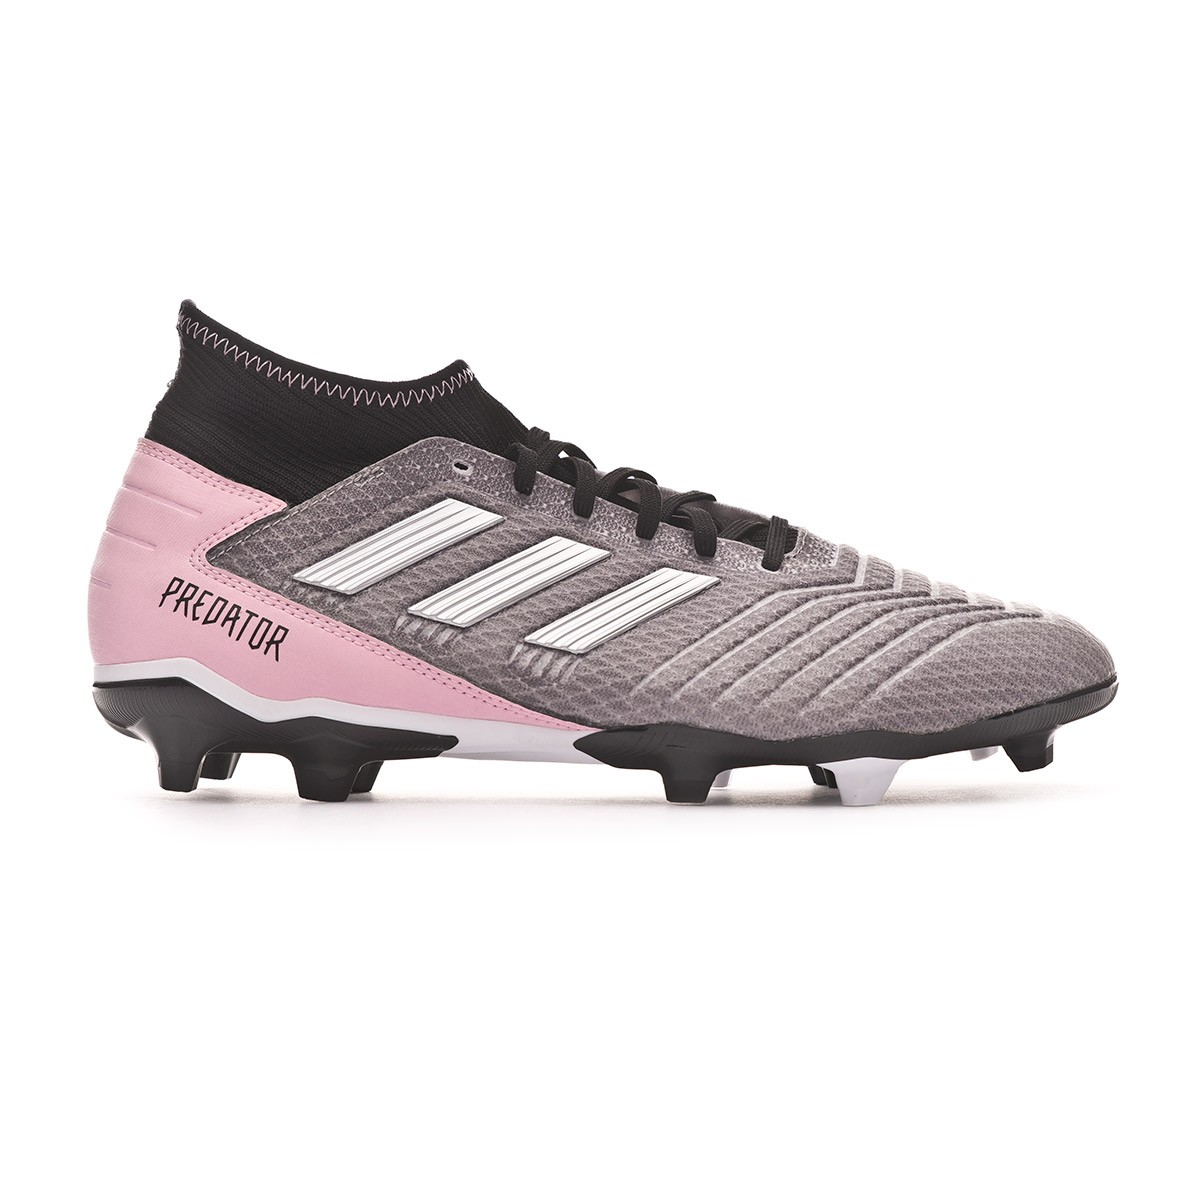 8af603ad443 Football Boots adidas Predator 19.3 FG Mujer Grey three-Silver  metallic-Core black - Football store Fútbol Emotion